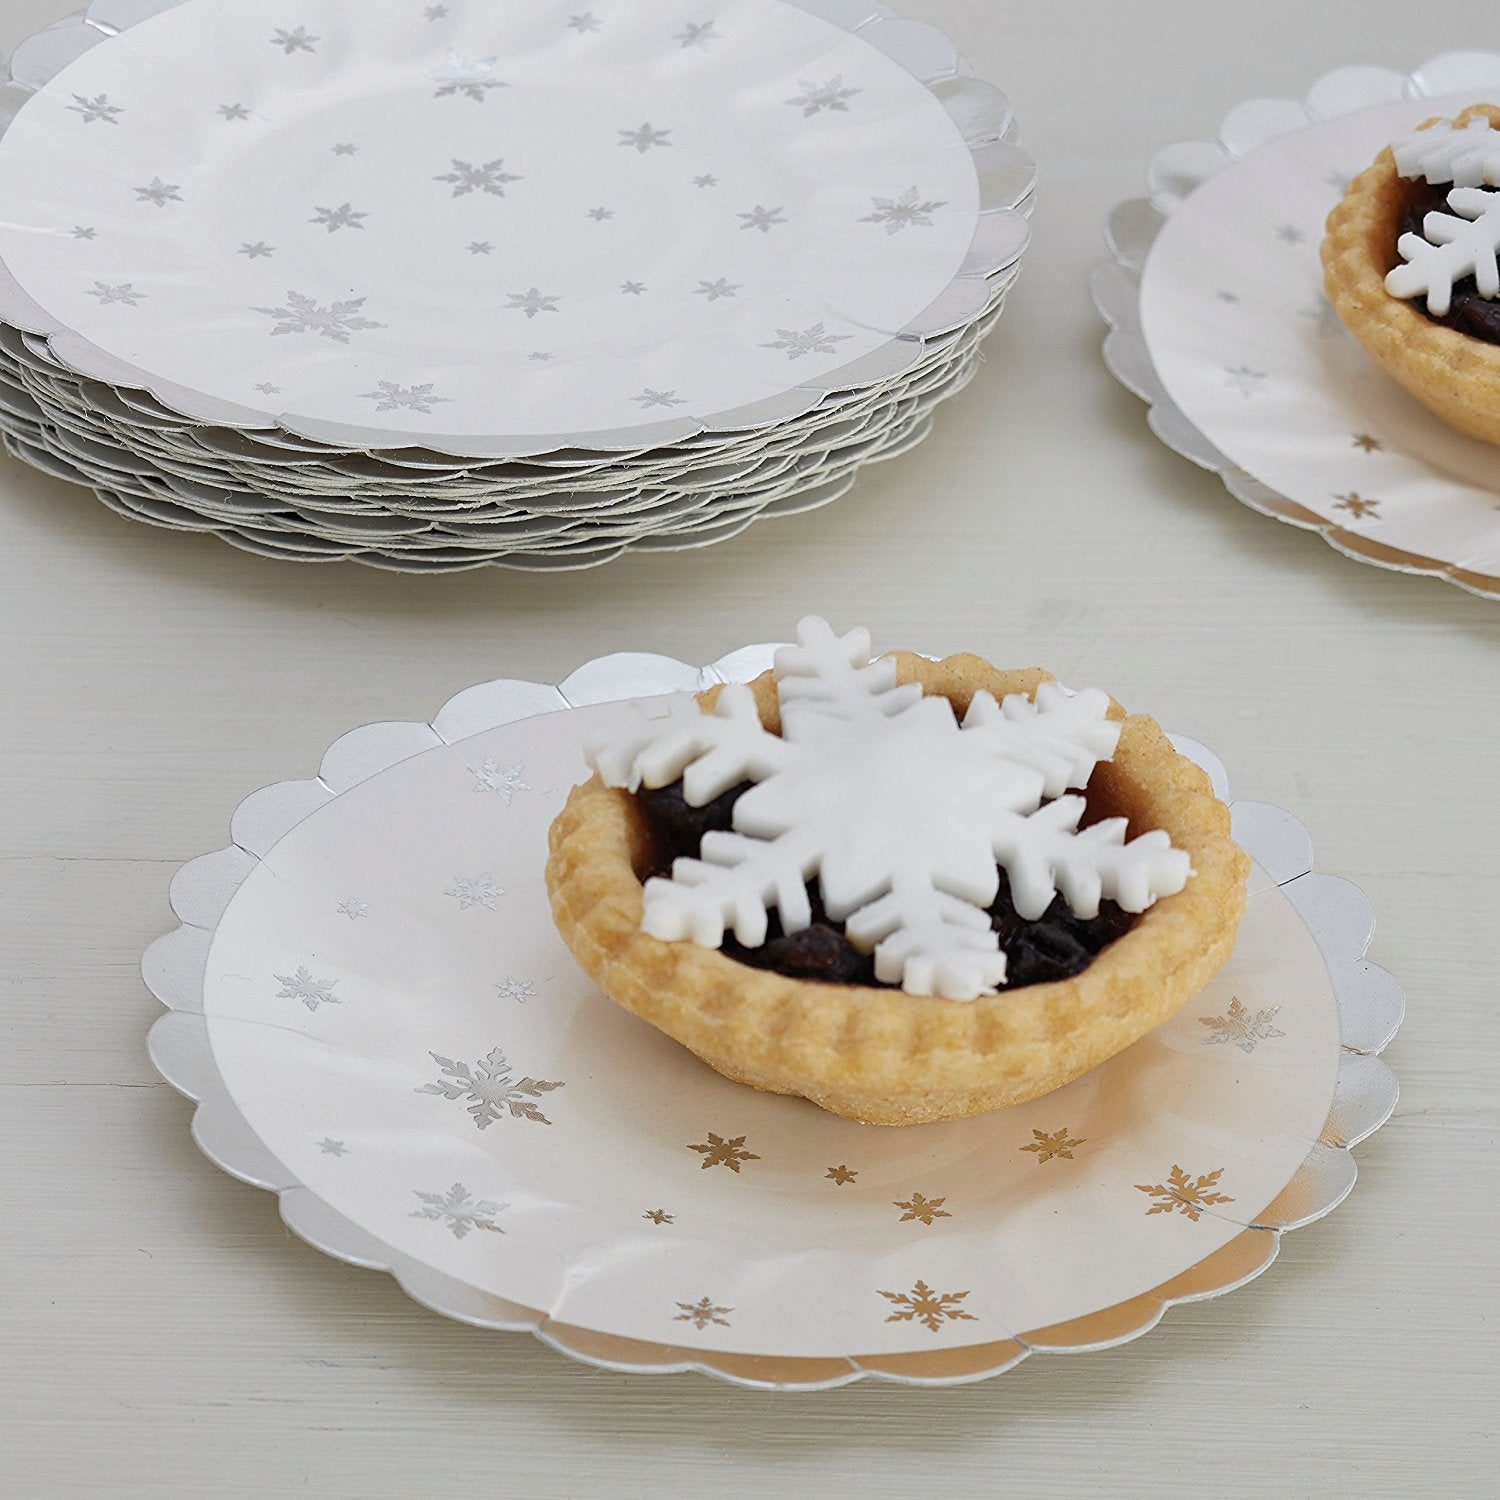 Previous Image Next Image. Mince Pie Plates ...  sc 1 st  Baker and Maker & Mince Pie Plates: Silver with White Snowflakes - Pack of 8 | Baker ...